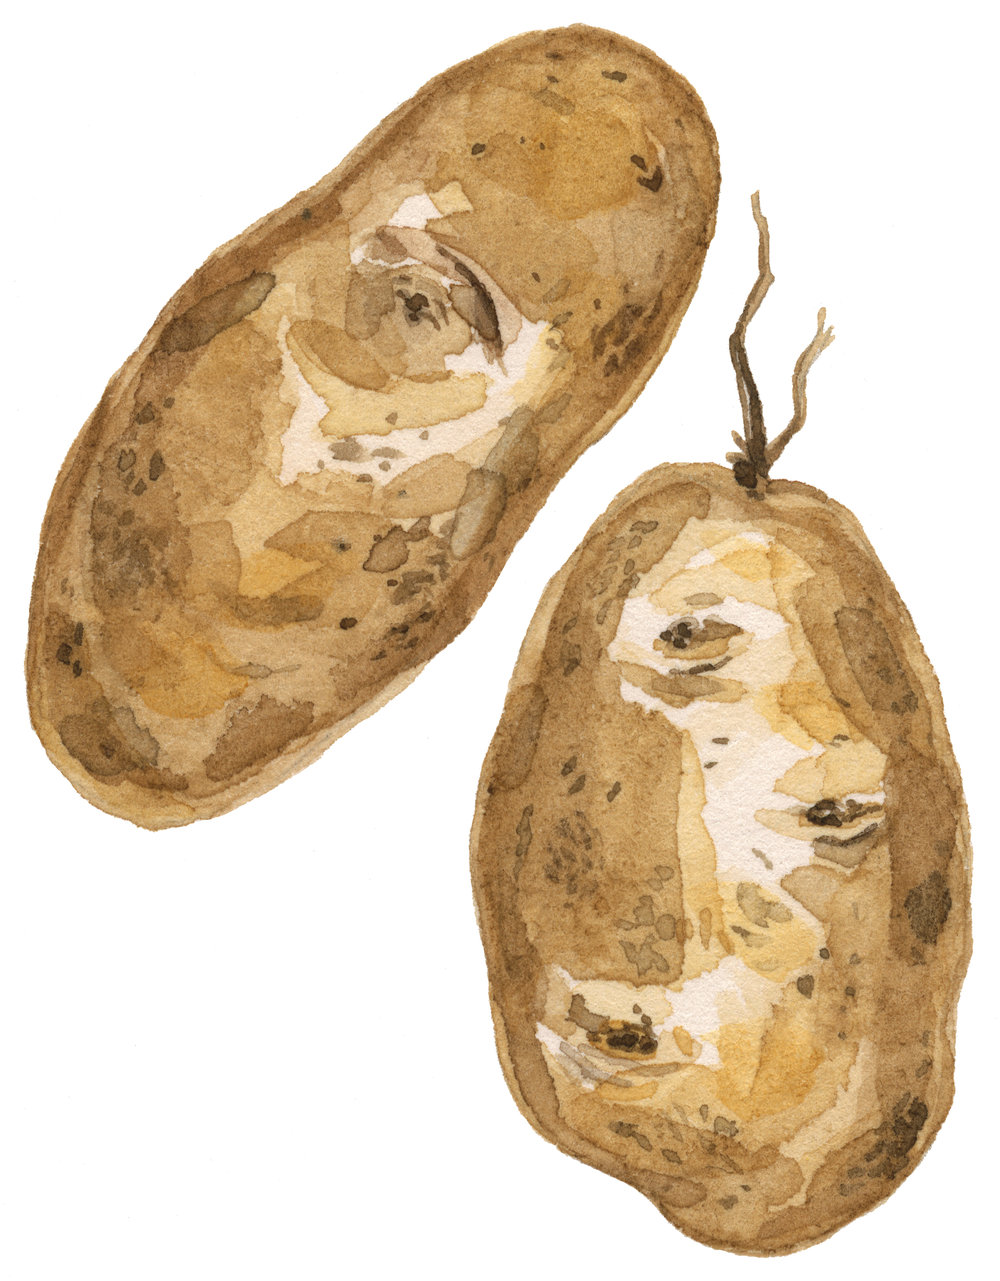 37-late-potatoes-lrg.jpg